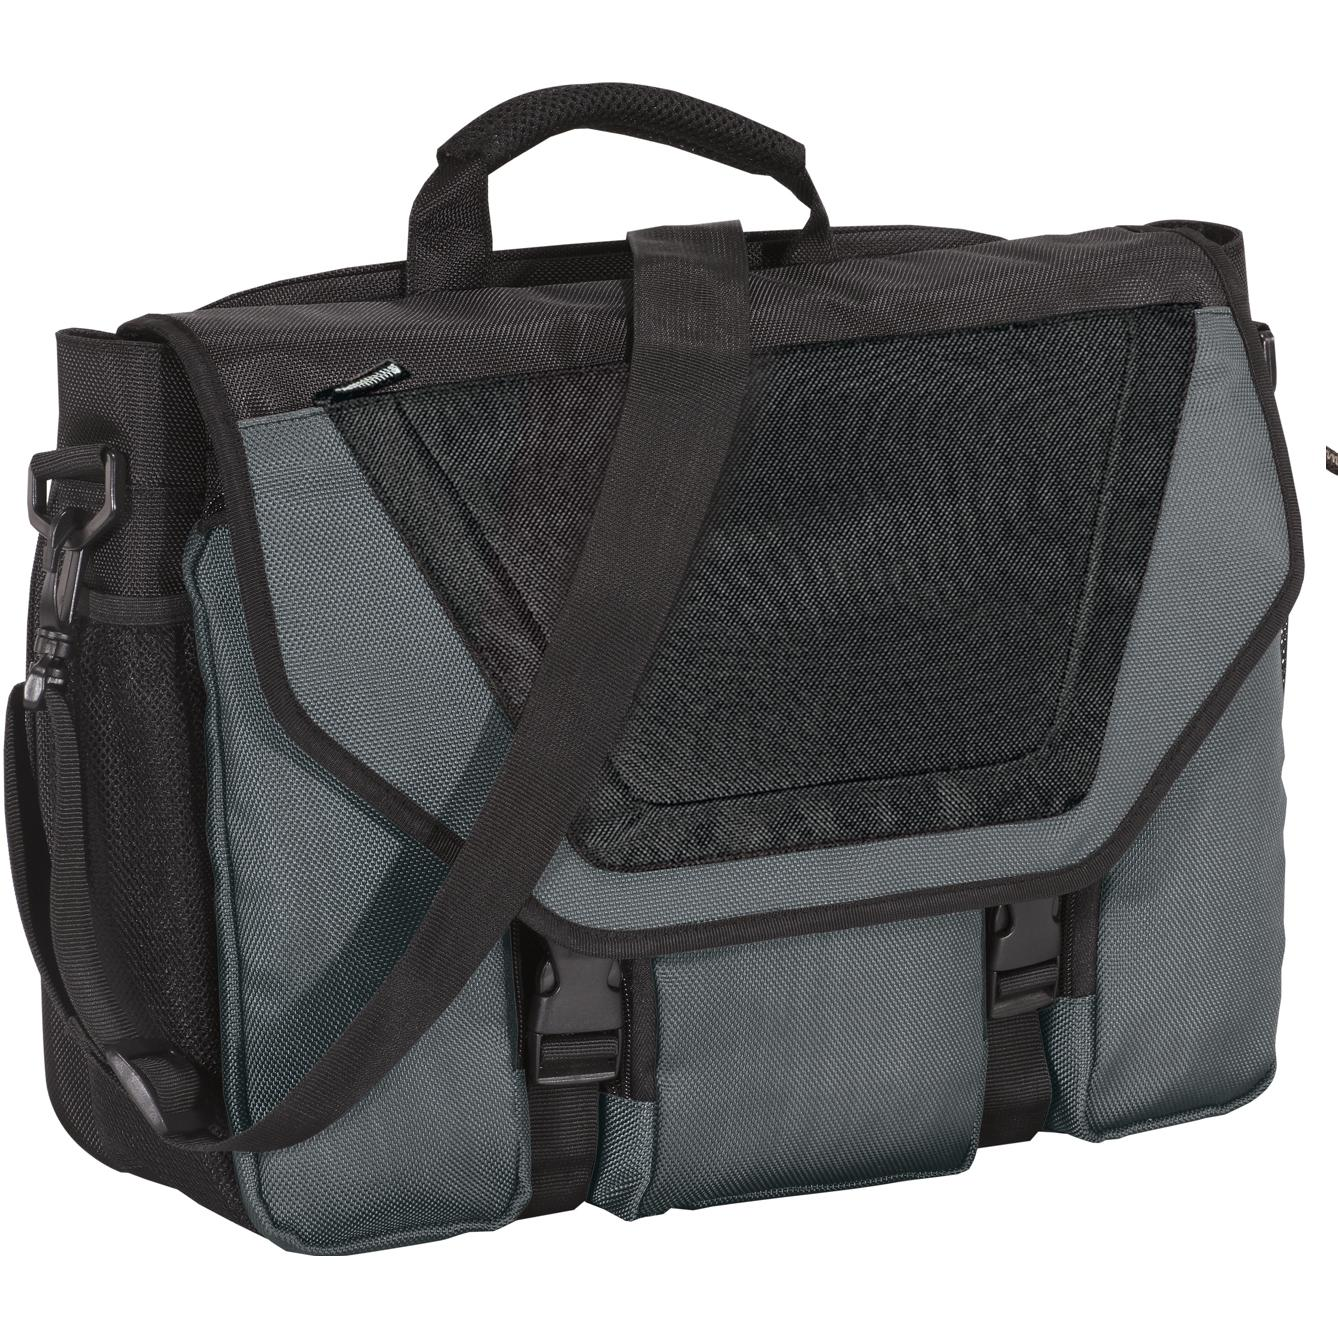 Port Authority Messenger Briefcase - Dark Slate/Black